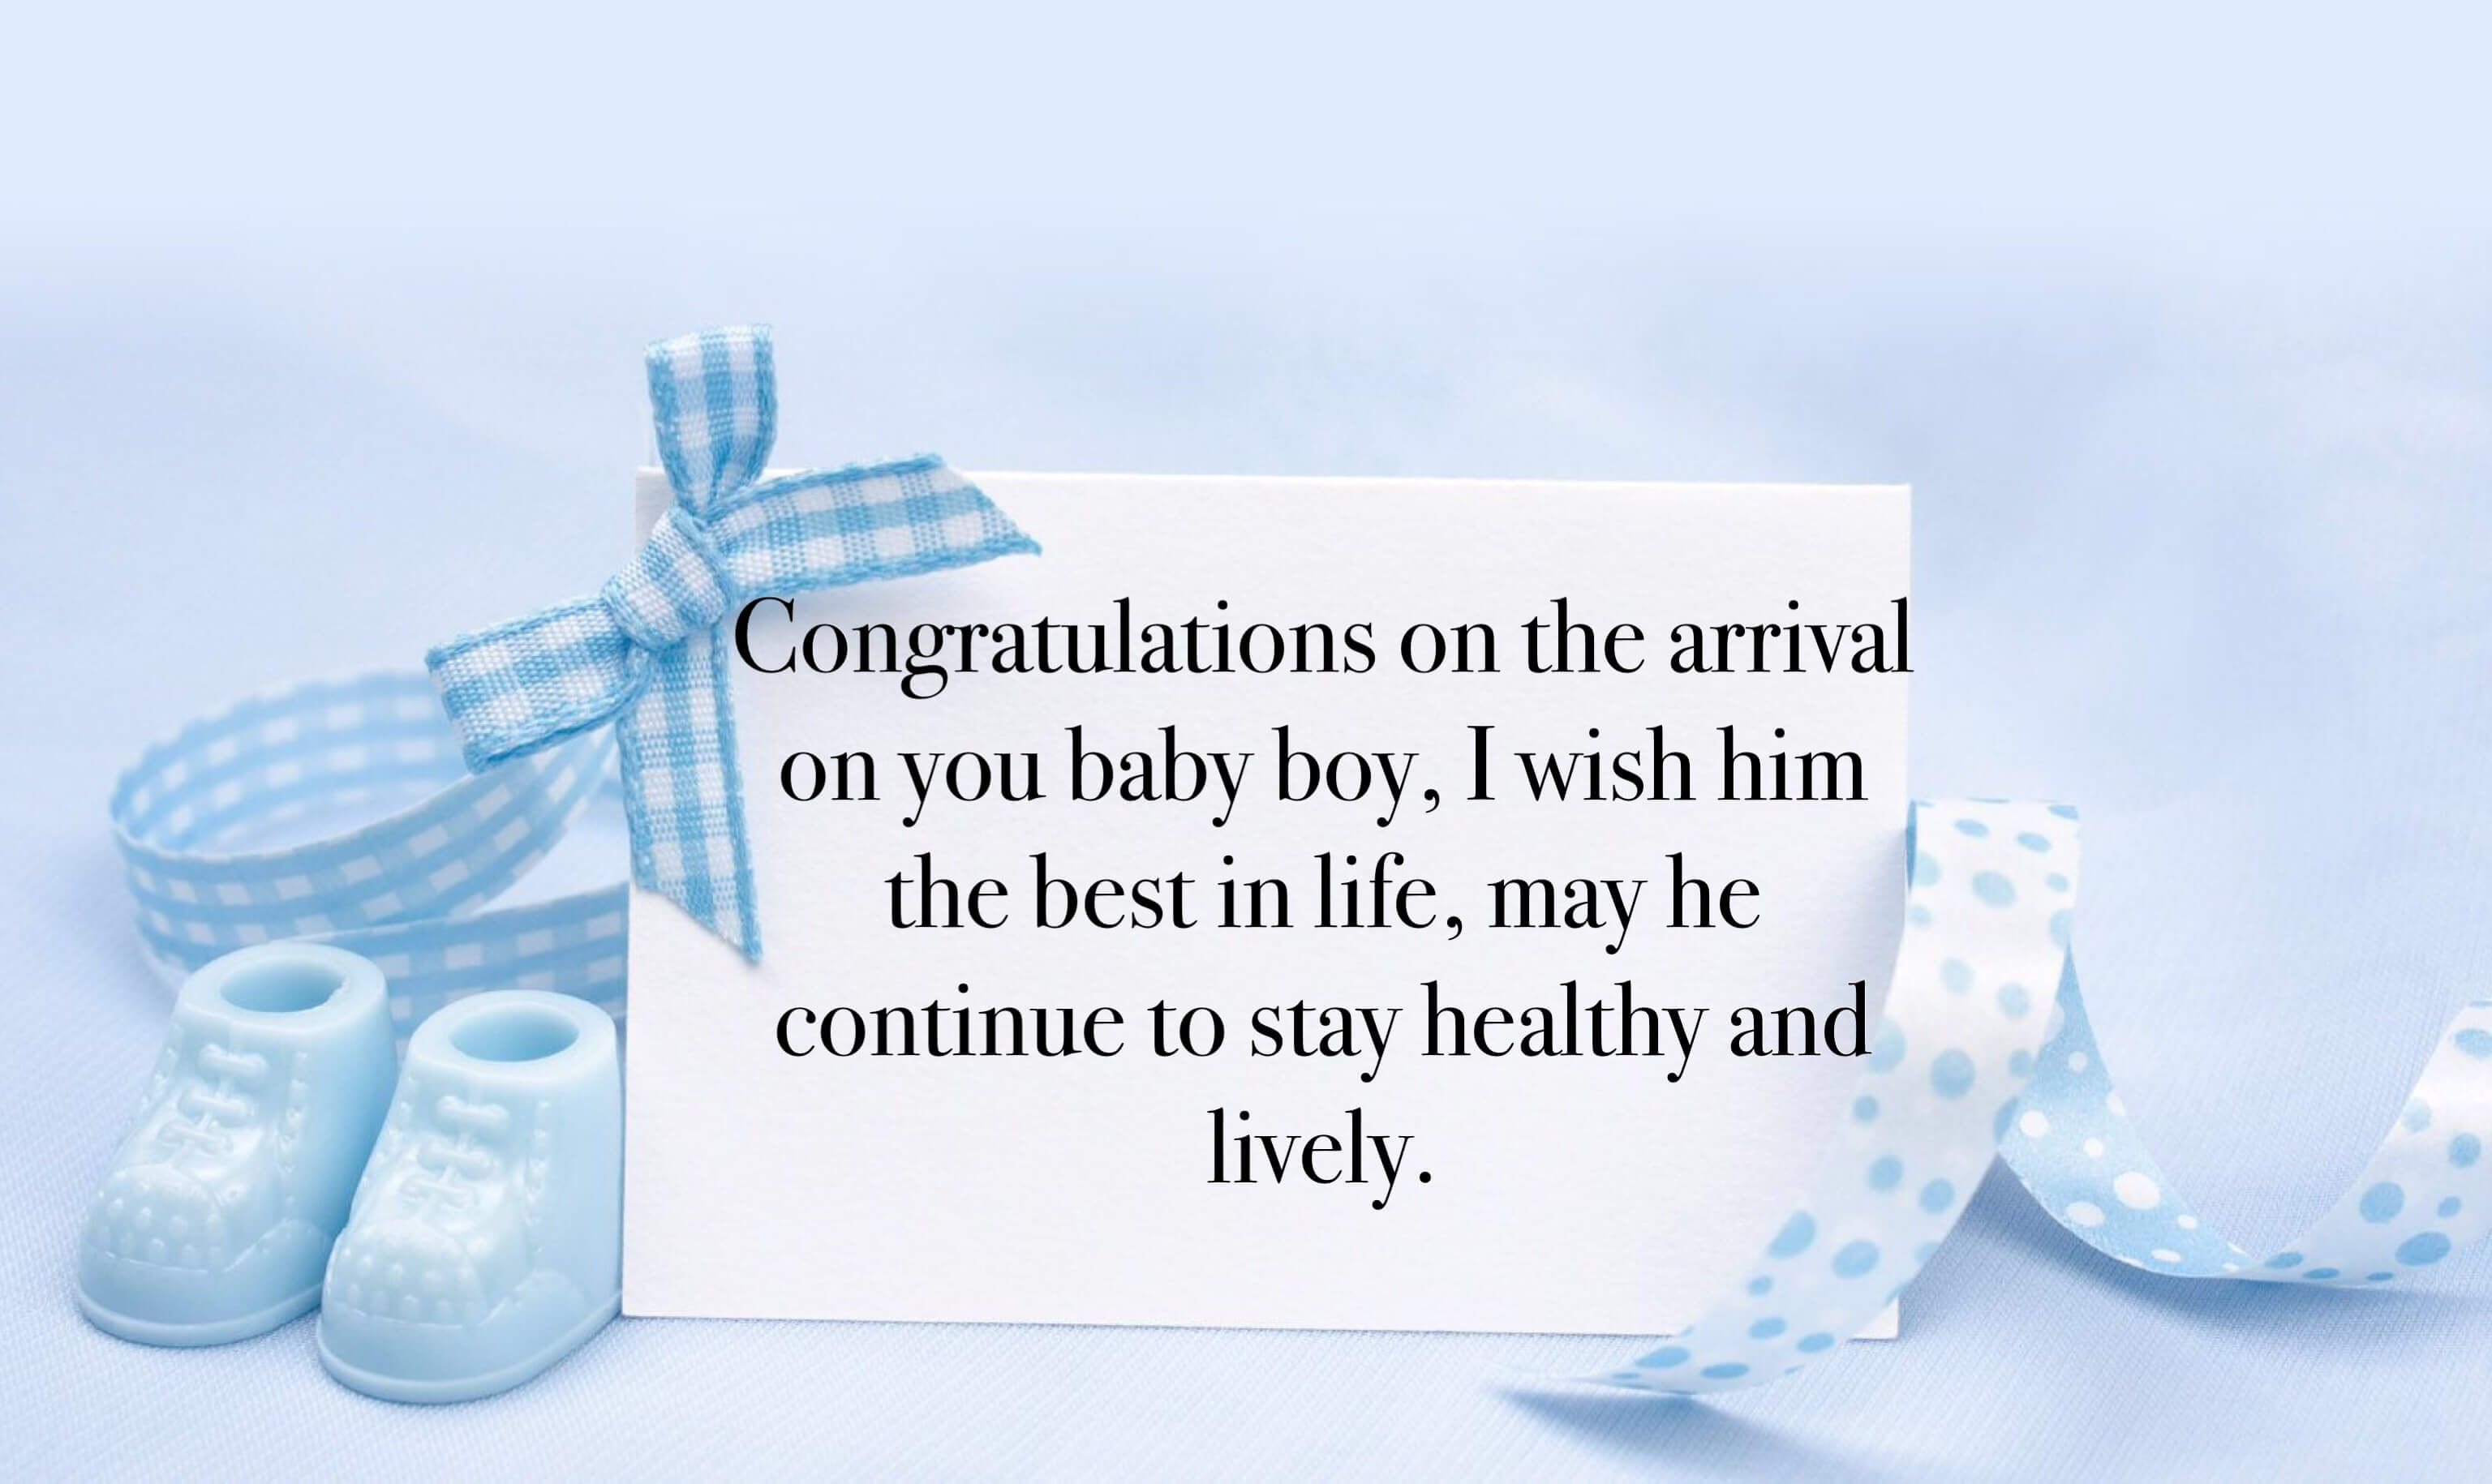 70 Congratulation Wishes For New Born Baby Boy The Right Messages Baby Boy Messages Baby Messages Baby Boy Congratulations Messages